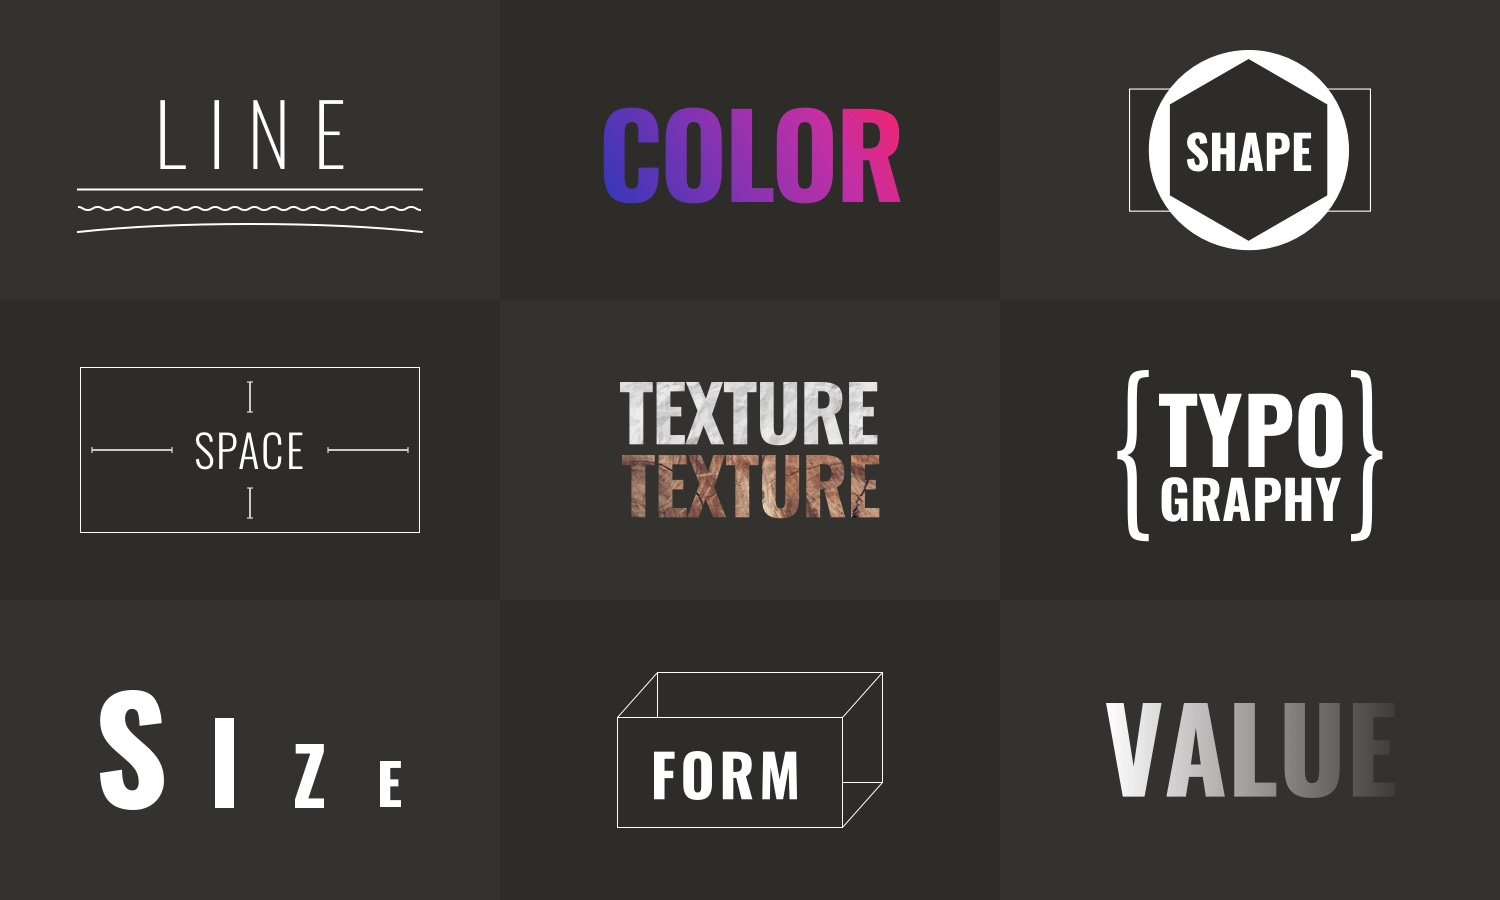 The Logo Design Elements